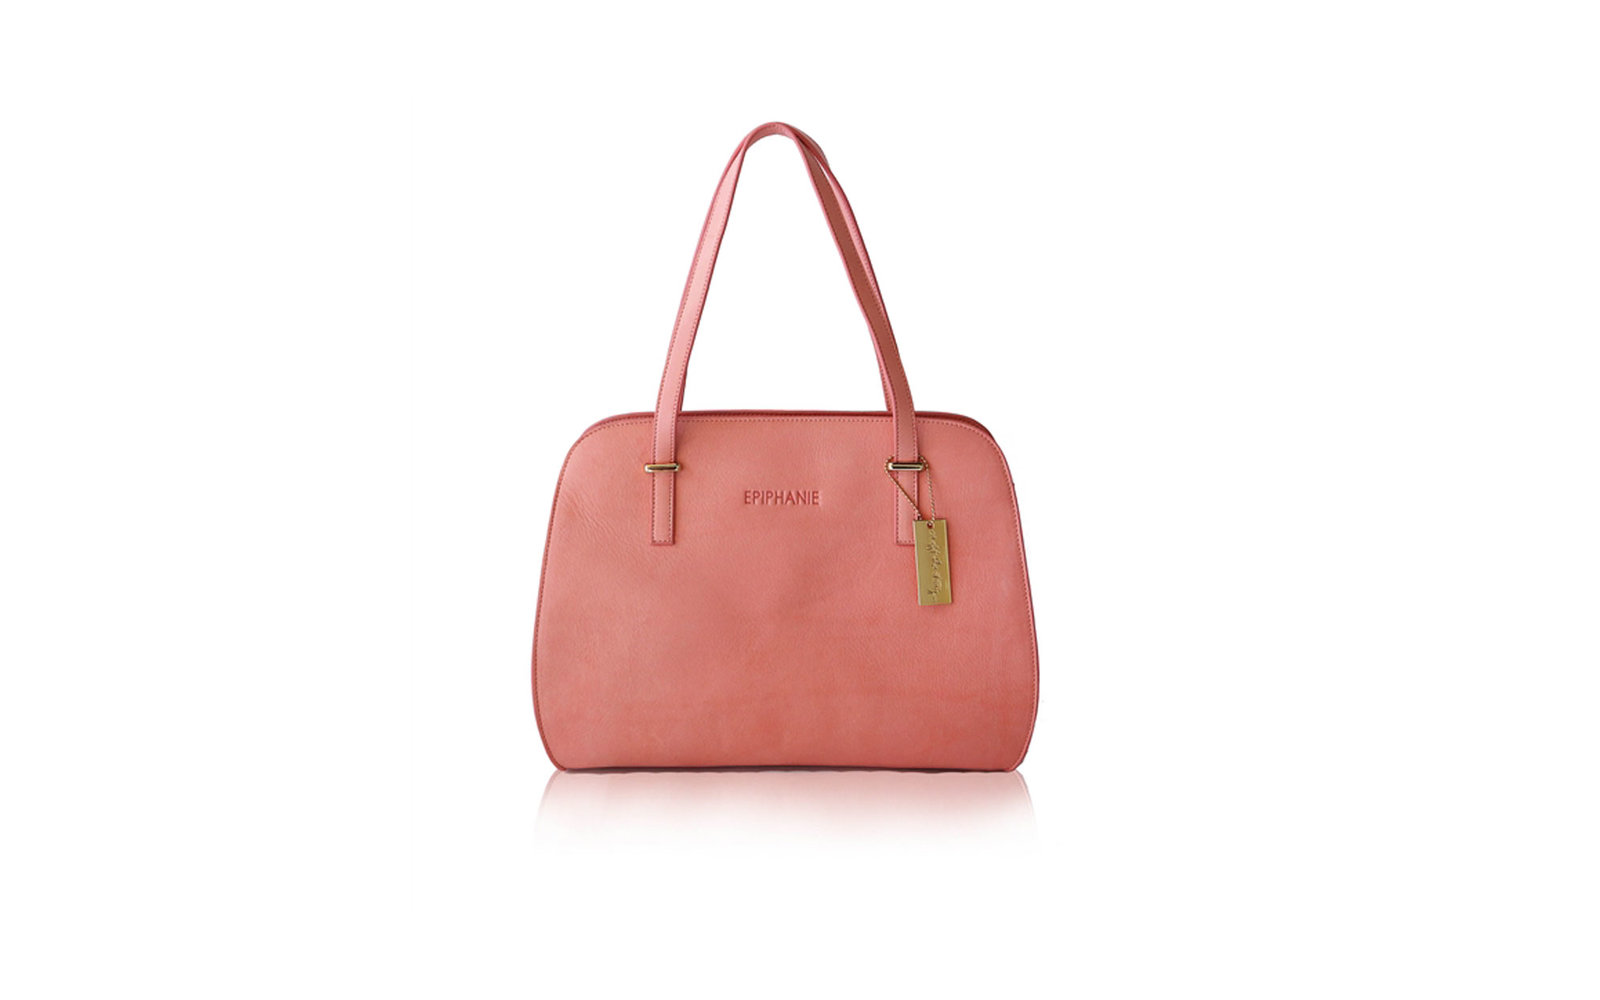 5c1bf514d5b0 Best for  Photographers Who Love the Purse Look